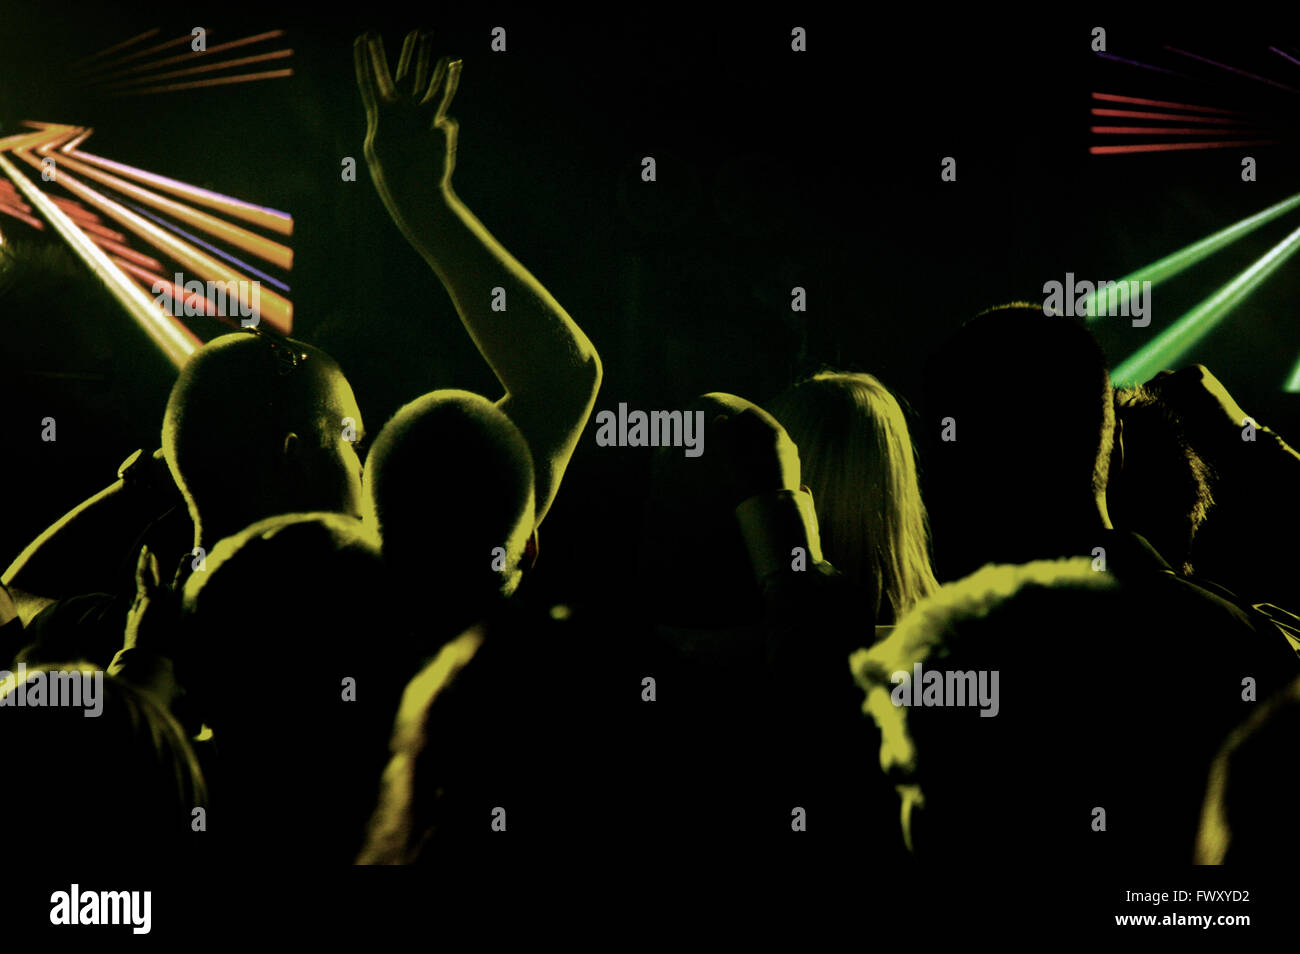 Finland, Pirkanmaa, Tampere, Silhouettes of people in night club - Stock Image